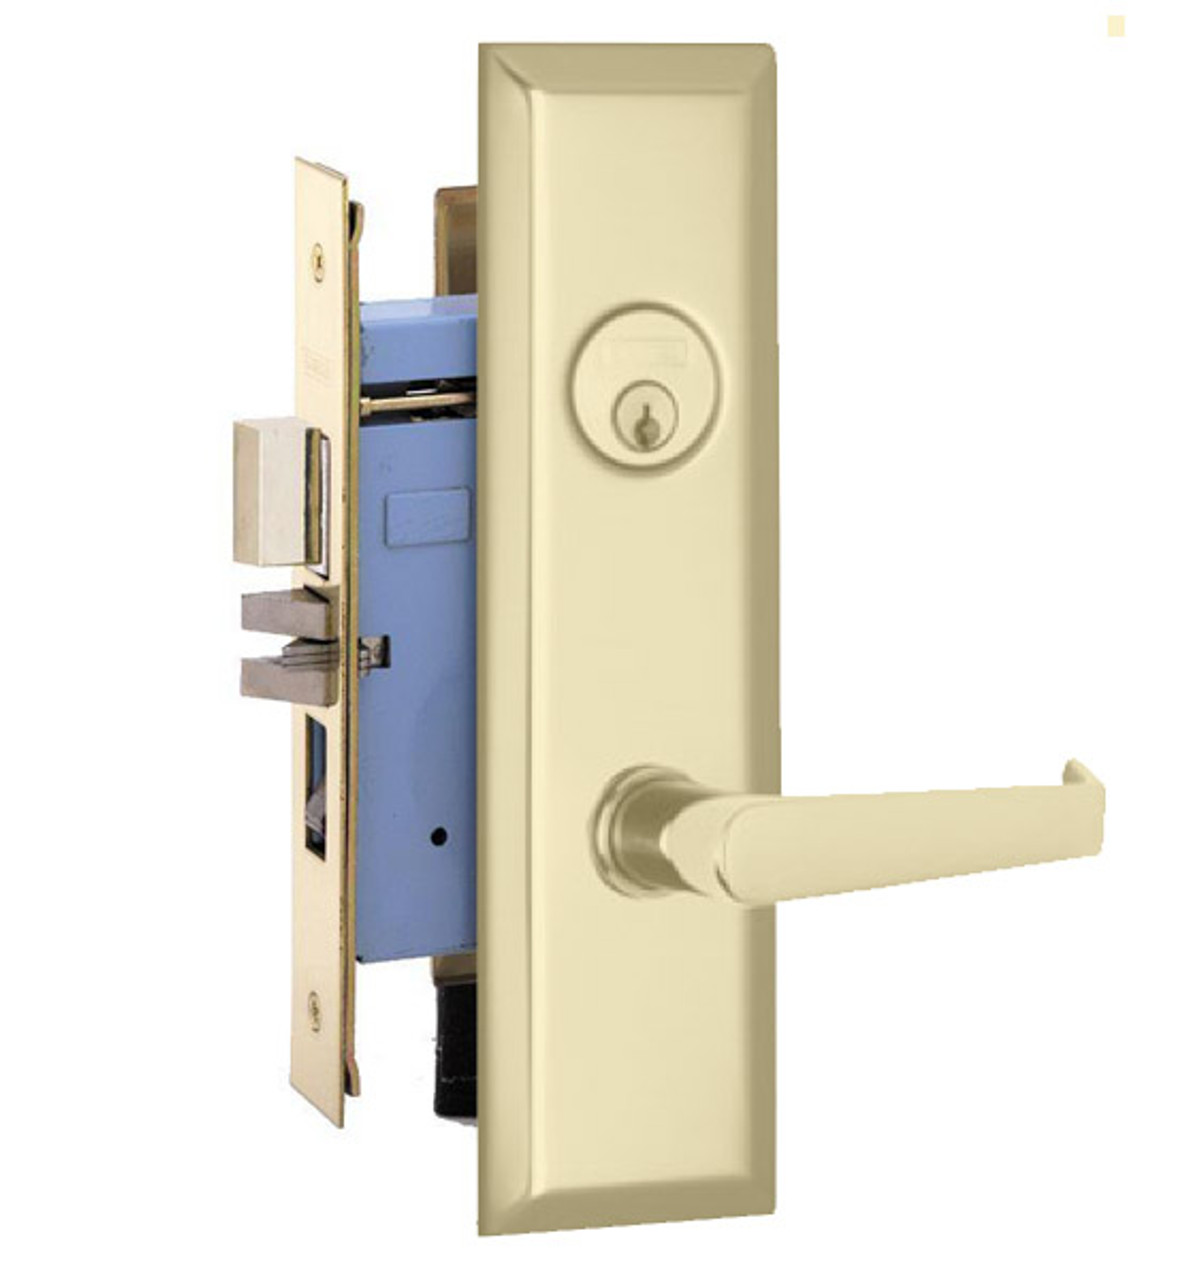 Marks Lock 9NY92 New Yorker Lever Plate Design For Apartment Entrance and Vestibule Door  sc 1 st  ED Locks \u0026 Security & Marks Lock 9NY92 New Yorker Lever Plate Design For Apartment ...